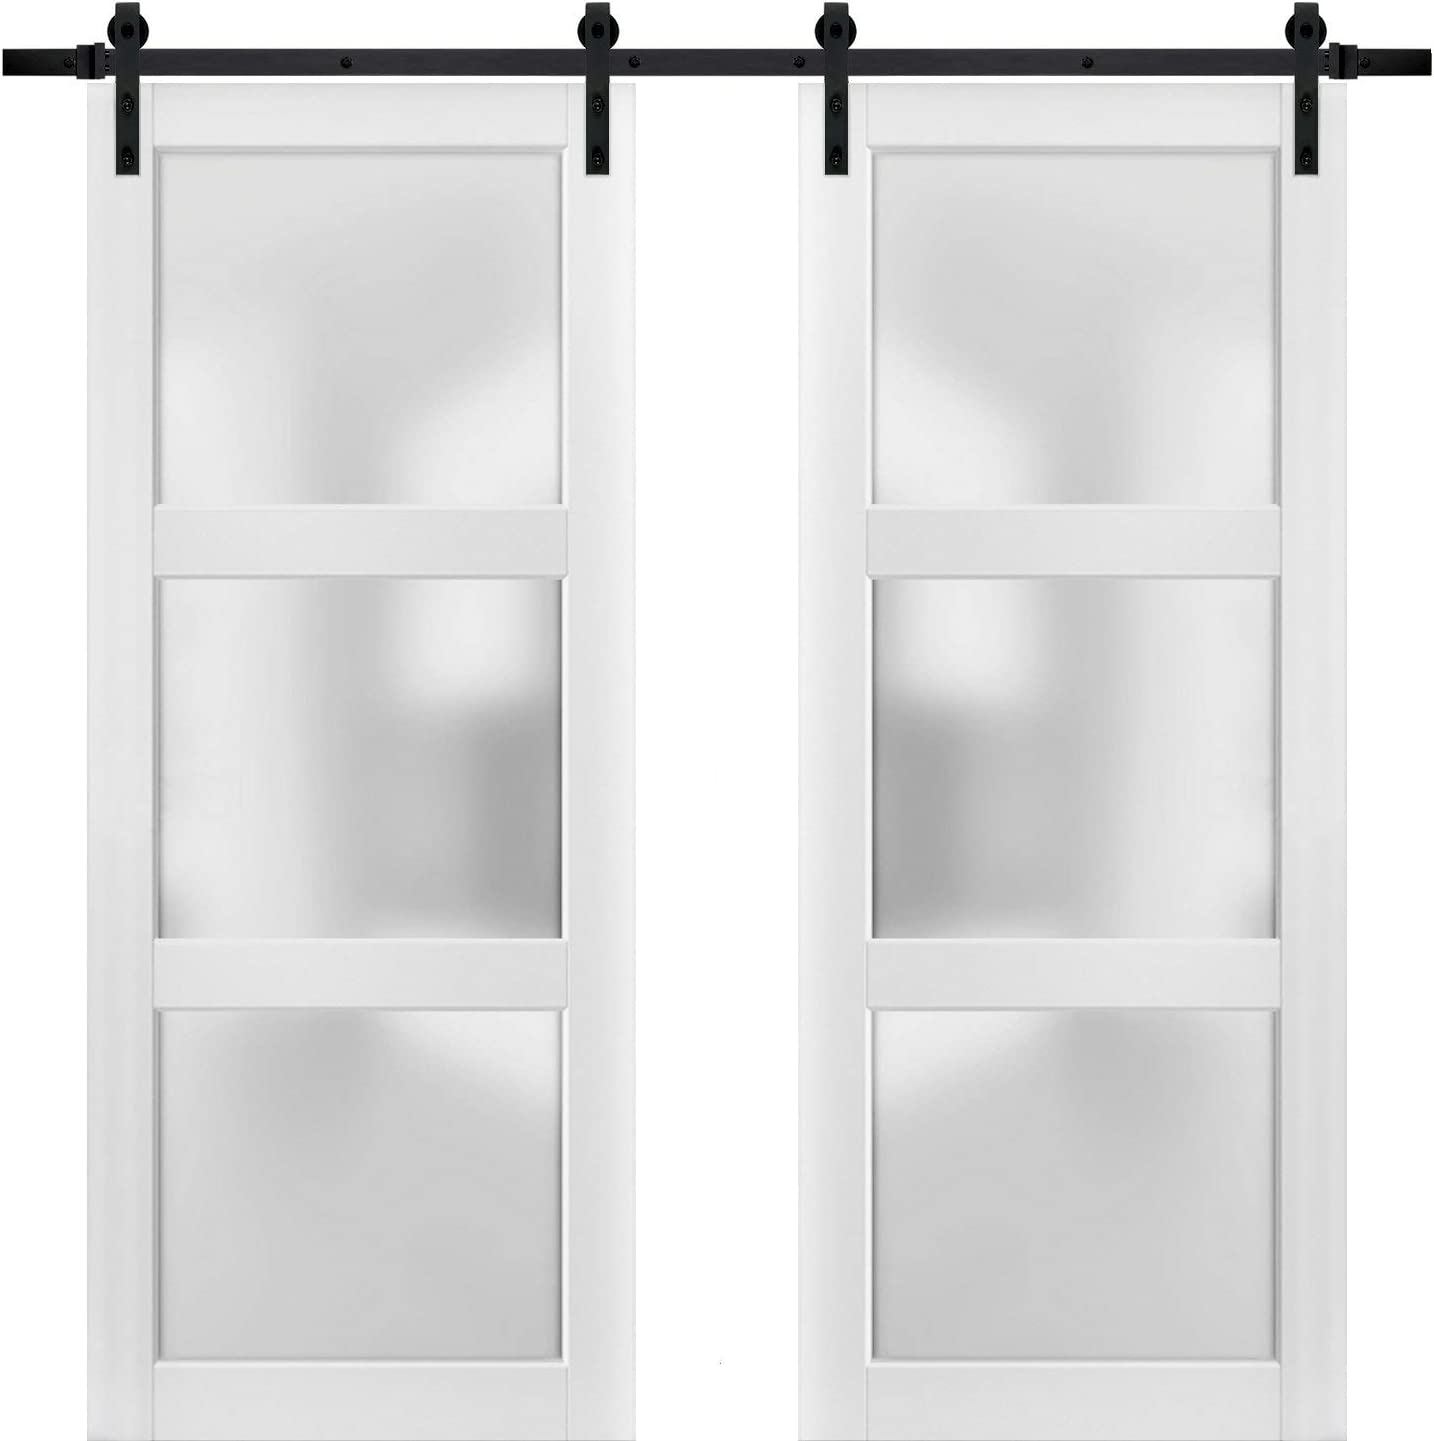 Solid Panel Interior Doors Top Mount Stainless Steel 6.6FT Rail Hangers Heavy Set Felicia 3312 Ginger Ash Gray Sturdy Barn Door 18 x 80 inches Frosted Glass 12 Lites